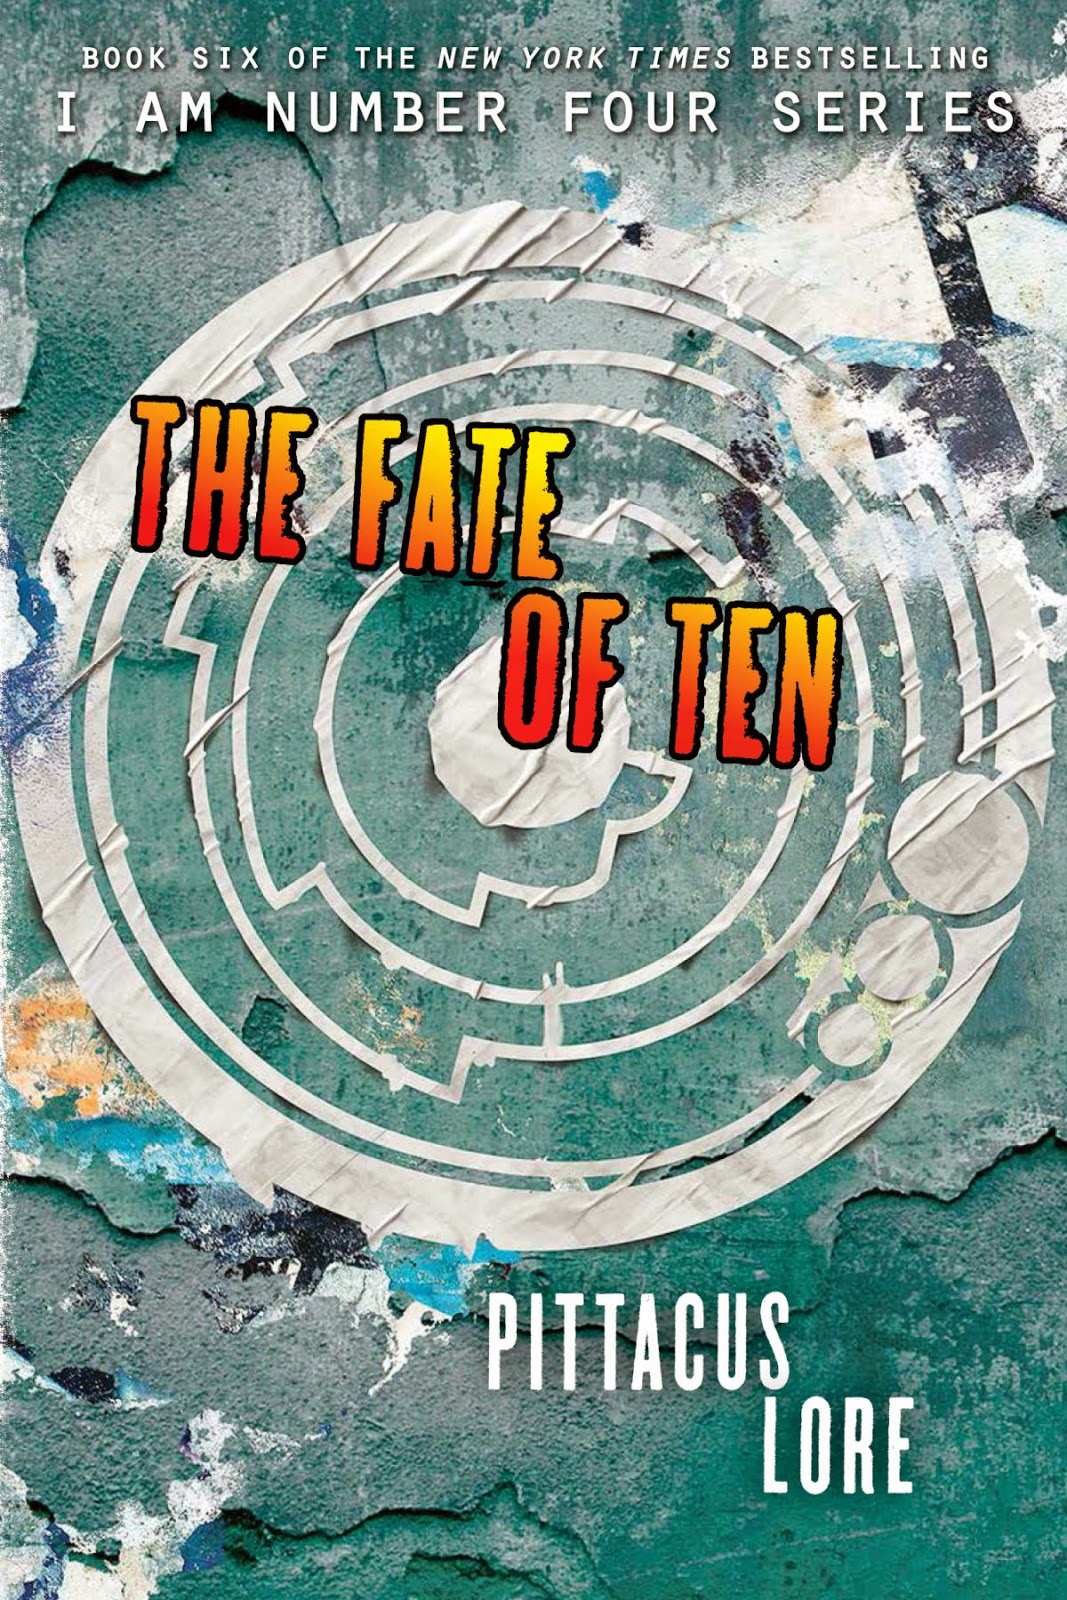 The Fate of Ten (cover) by Pittacus Lore